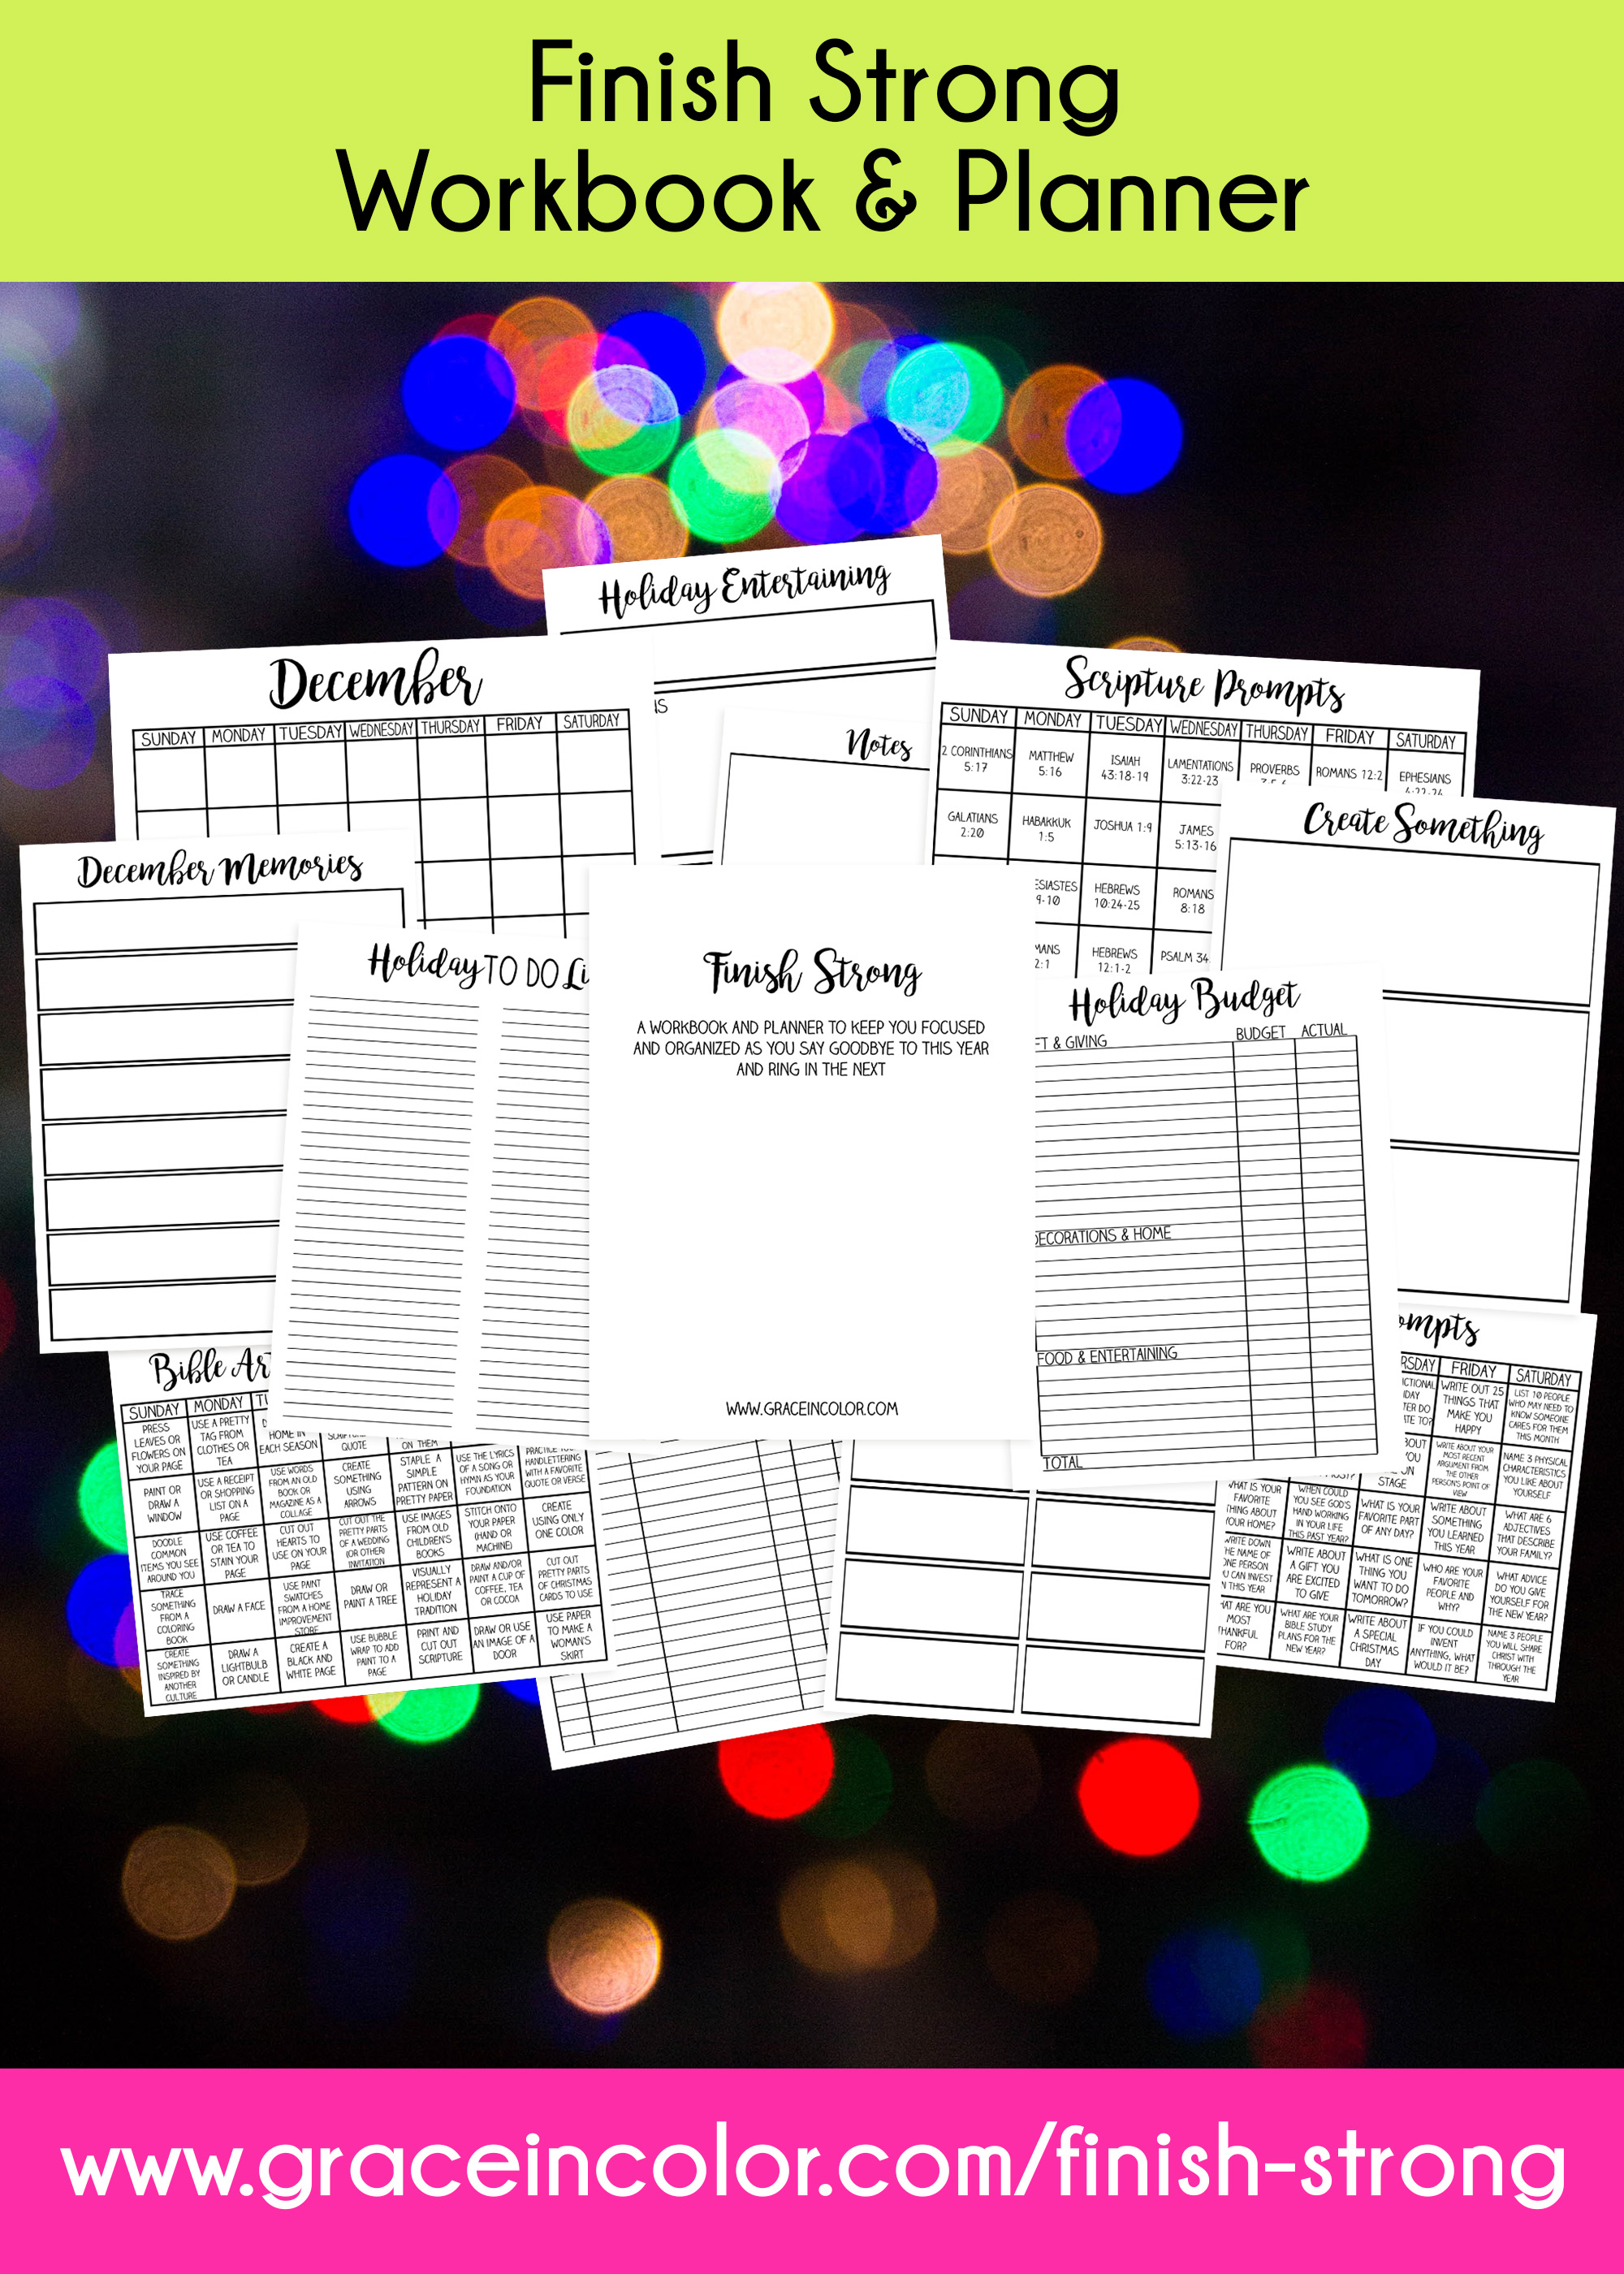 Finish this year Strong with this Workbook and Planner from Grace in Color.  #planner #holidayplanning #newyearplanning